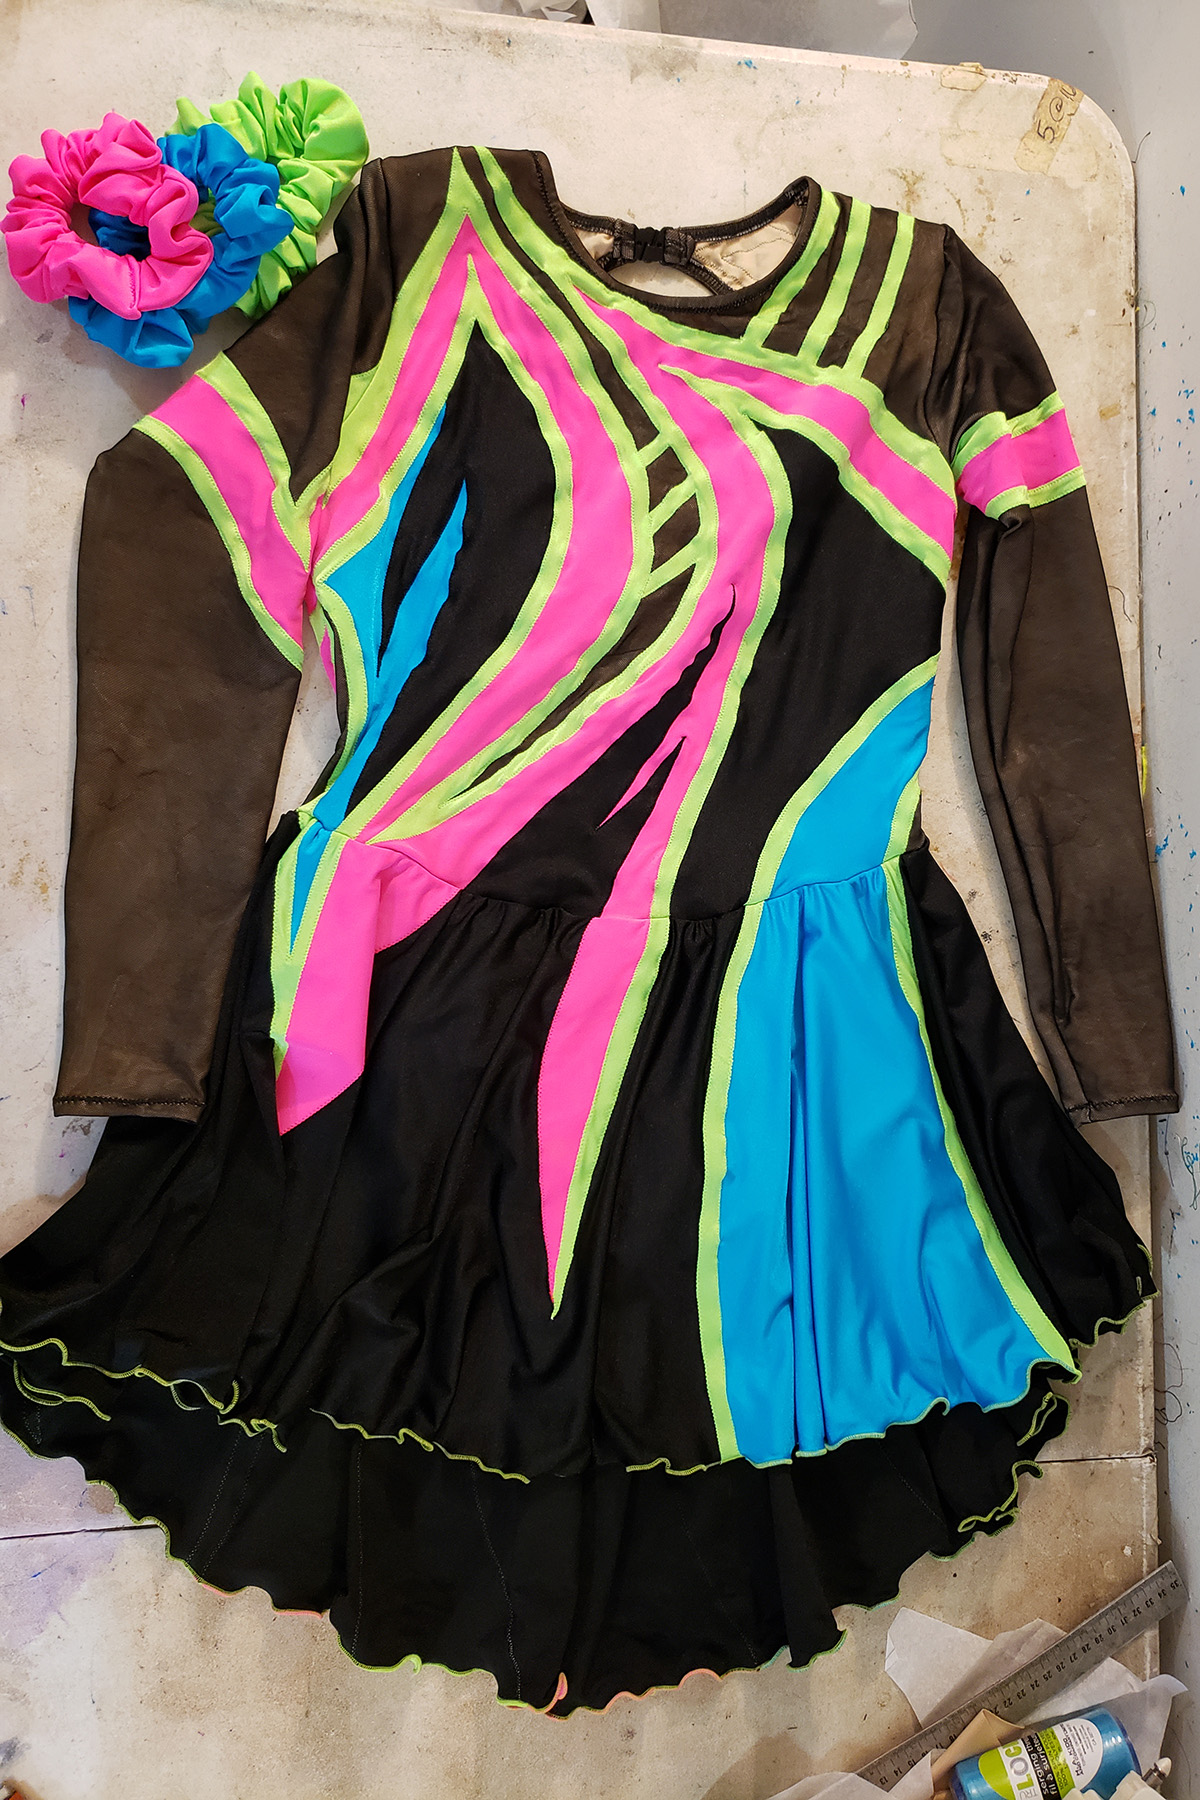 A front view of the 80's themed figure skating dress. It is black spandex and black mesh, with swirls of neon pink, lime green, and sky blue on it. There are 3 matching scrunchies laid out beside it.